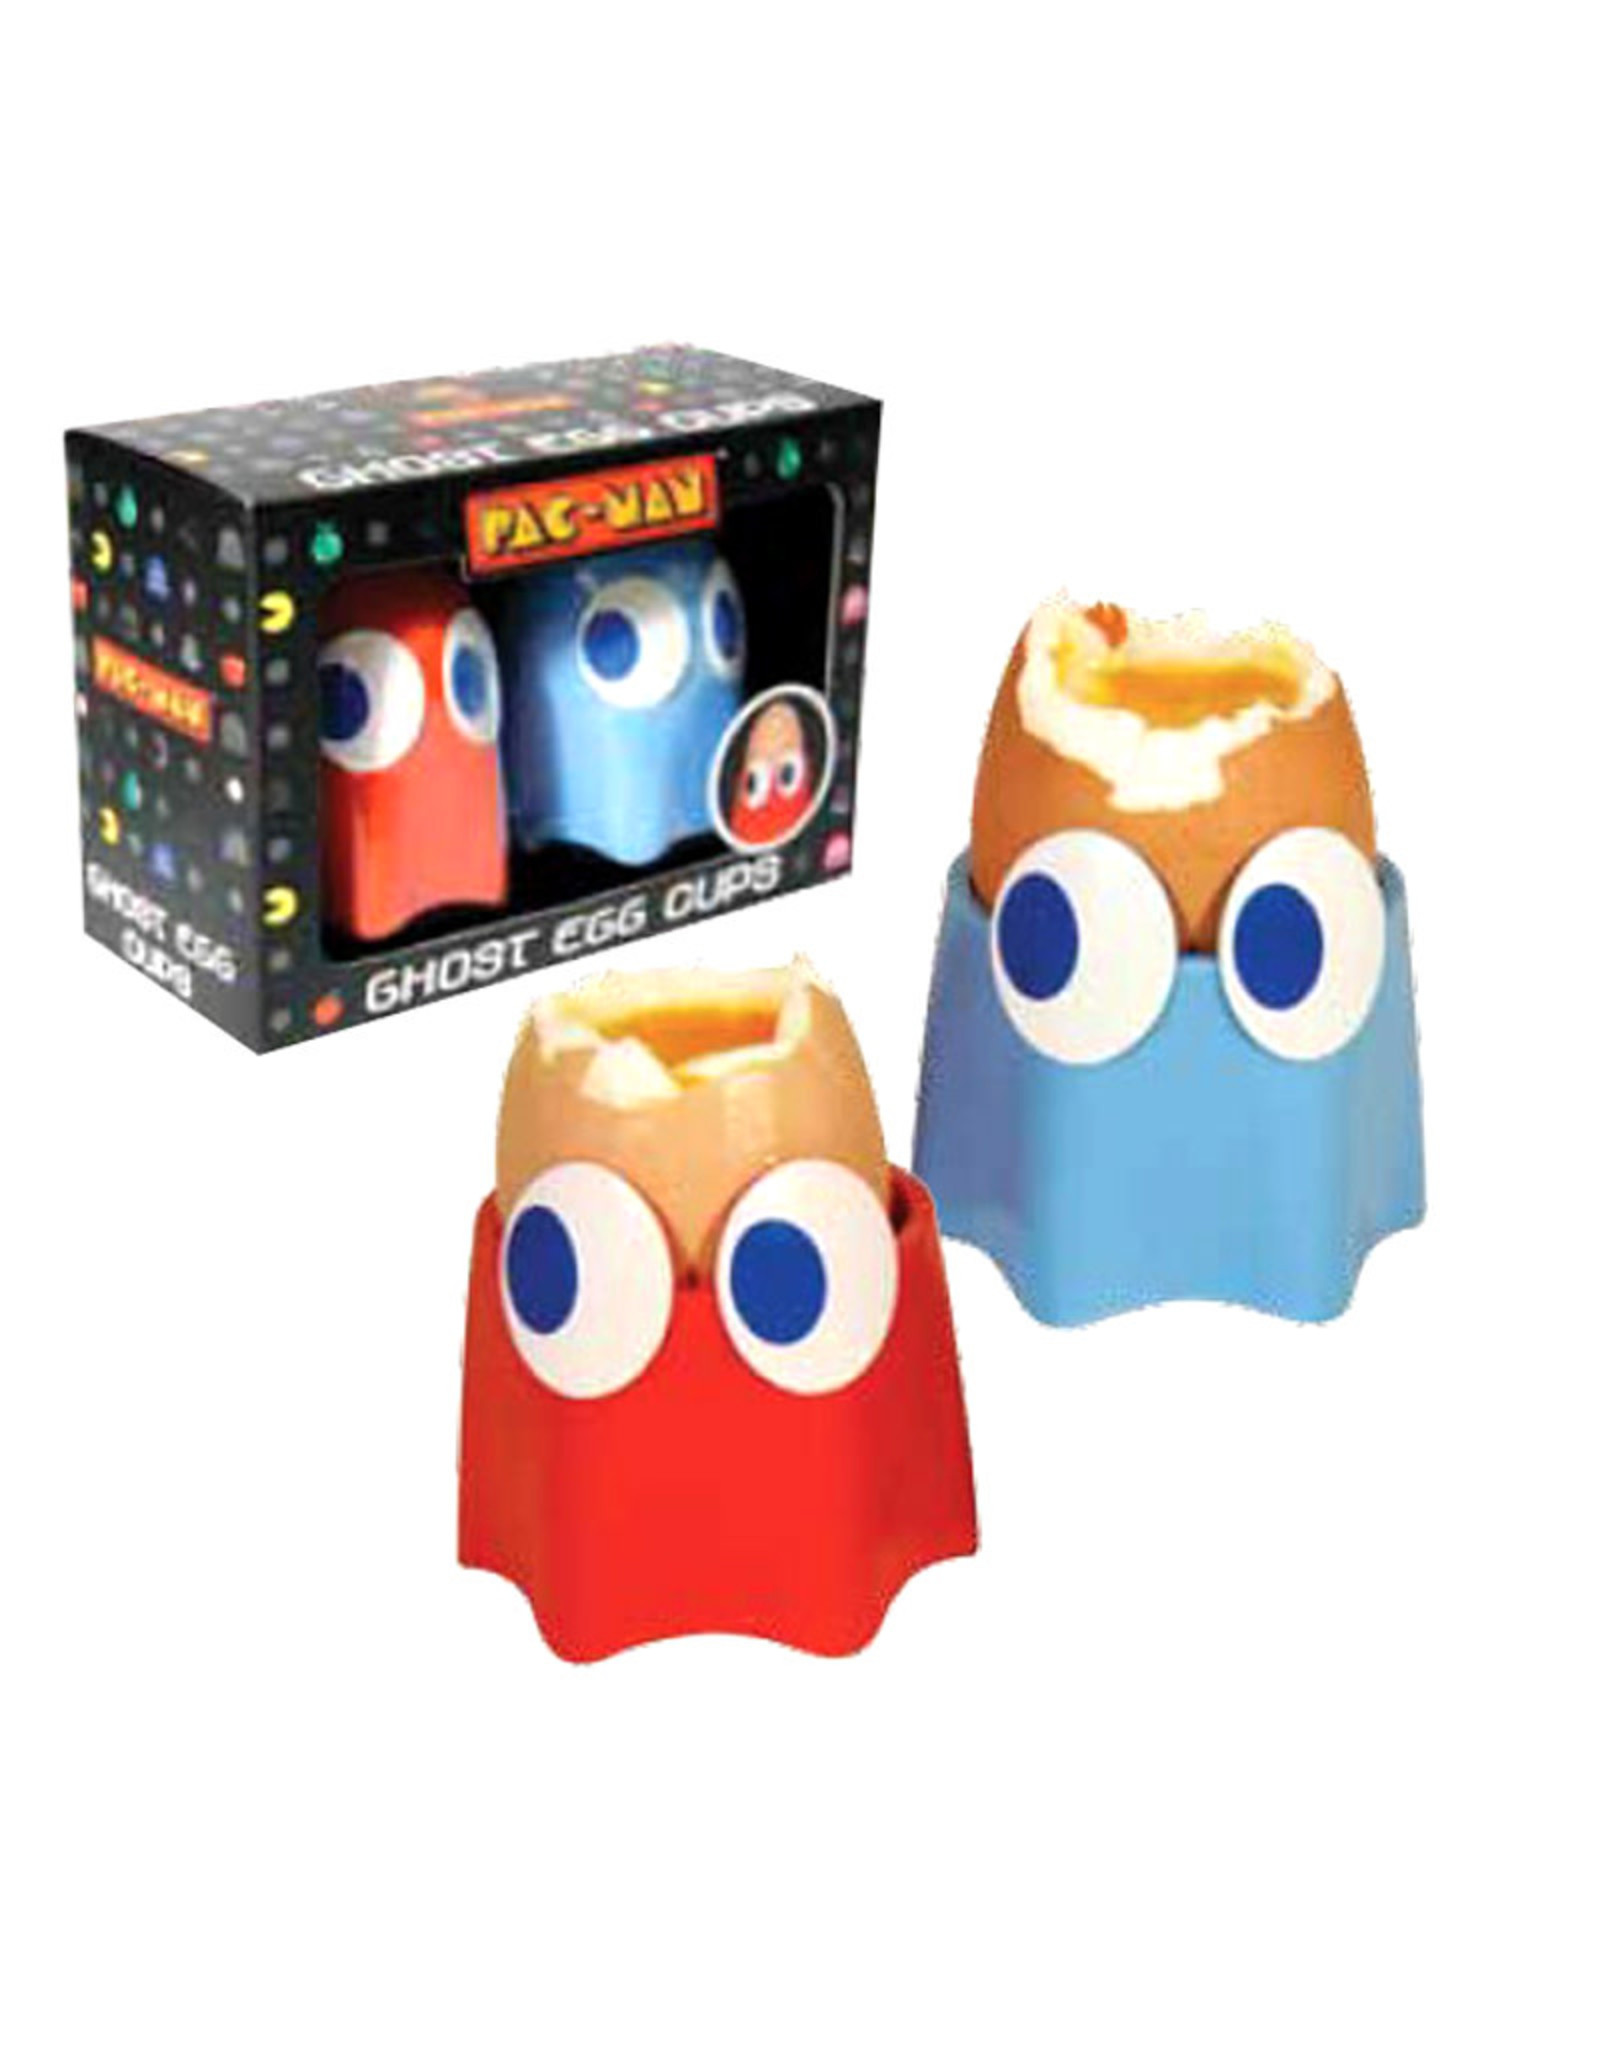 Pac-Man Pac-Man ( Ghost Egg )